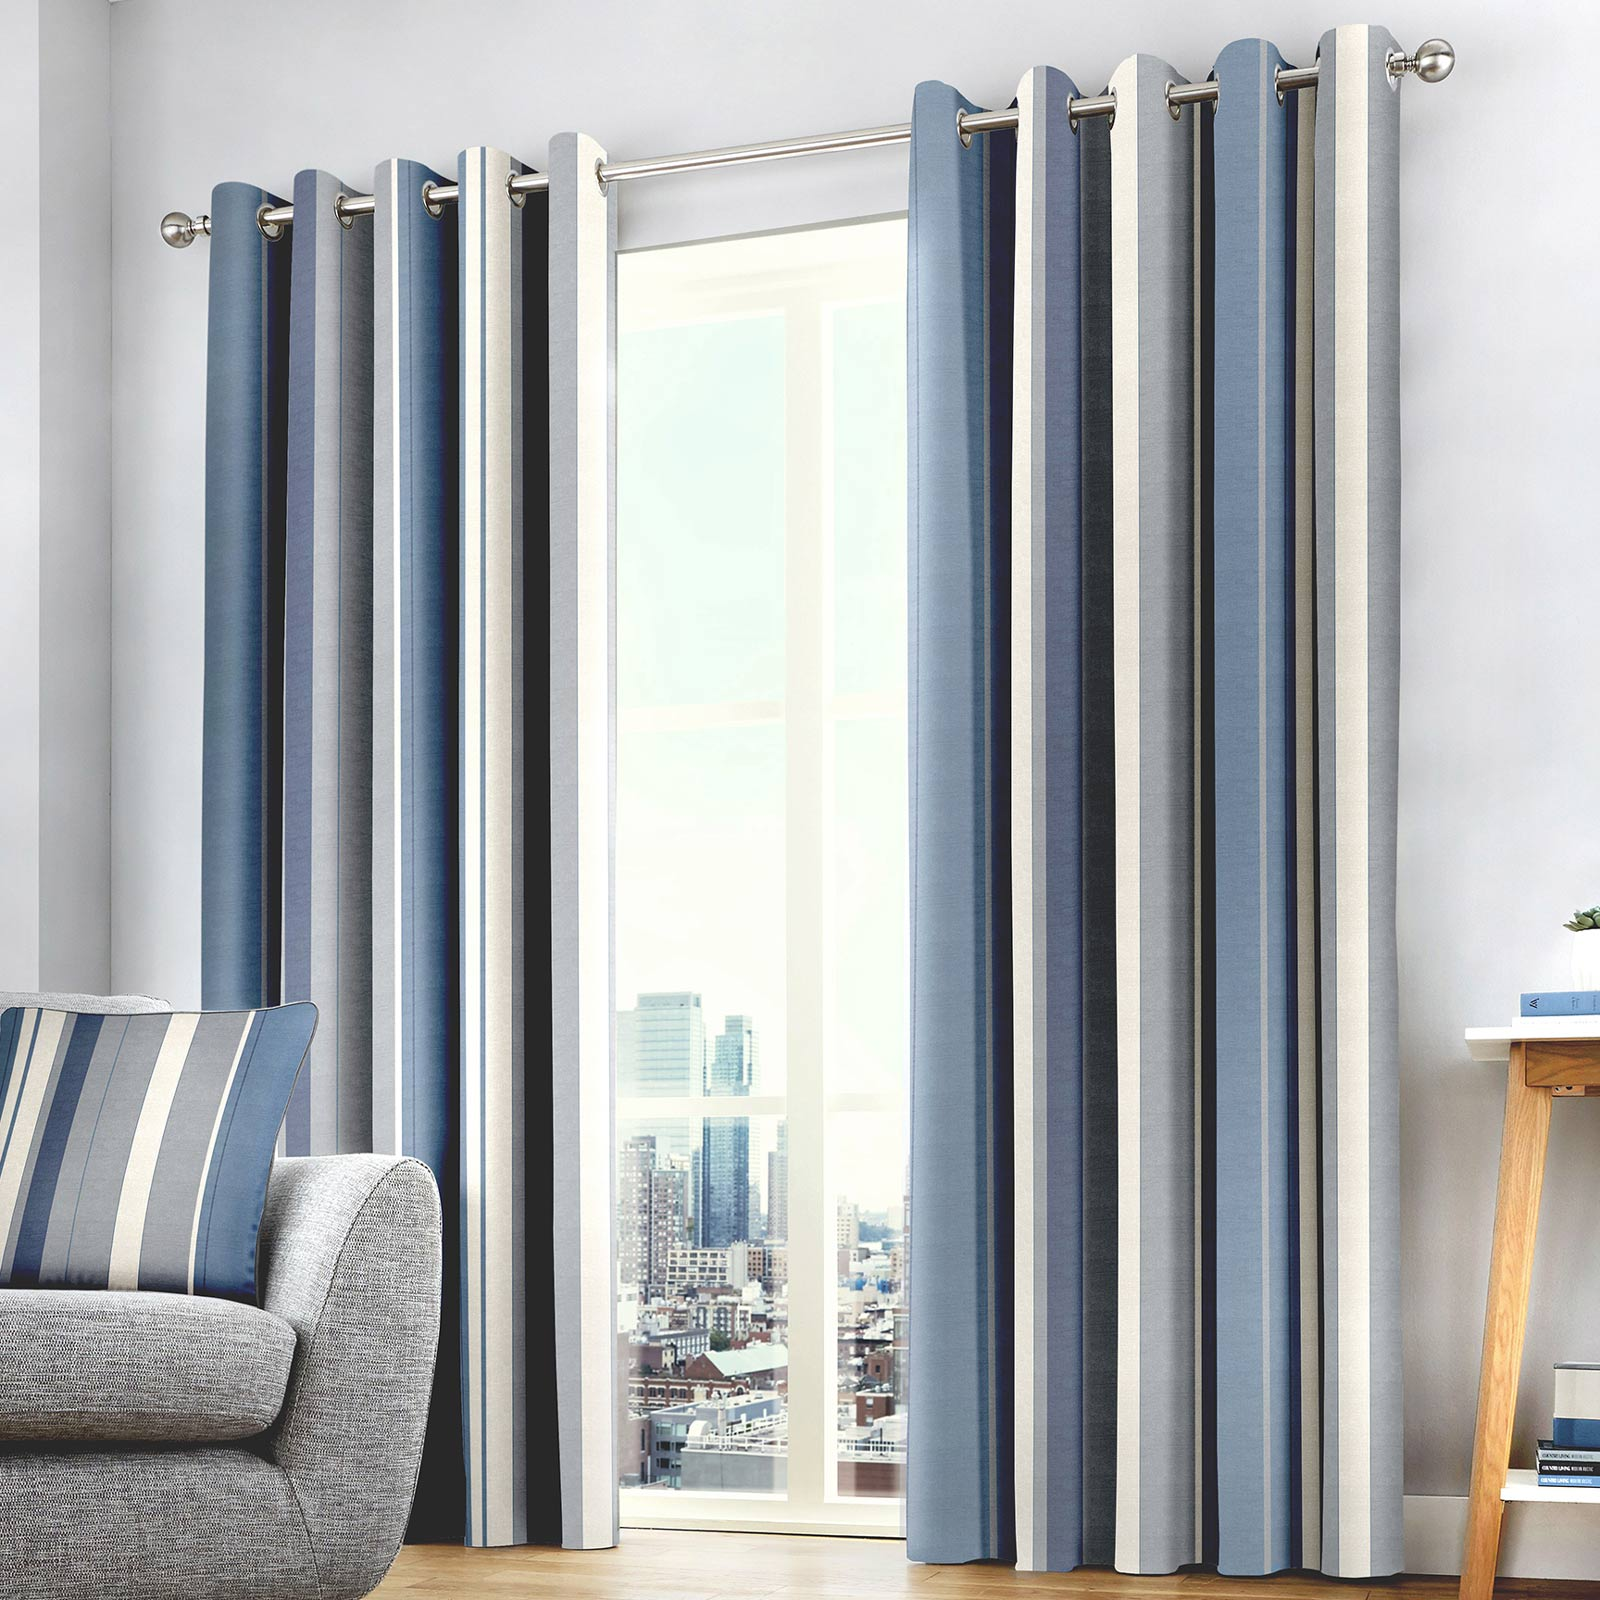 Whitworth Stripe Lined Eyelet Curtains Blue - 46'' x 54'' - Ideal Textiles